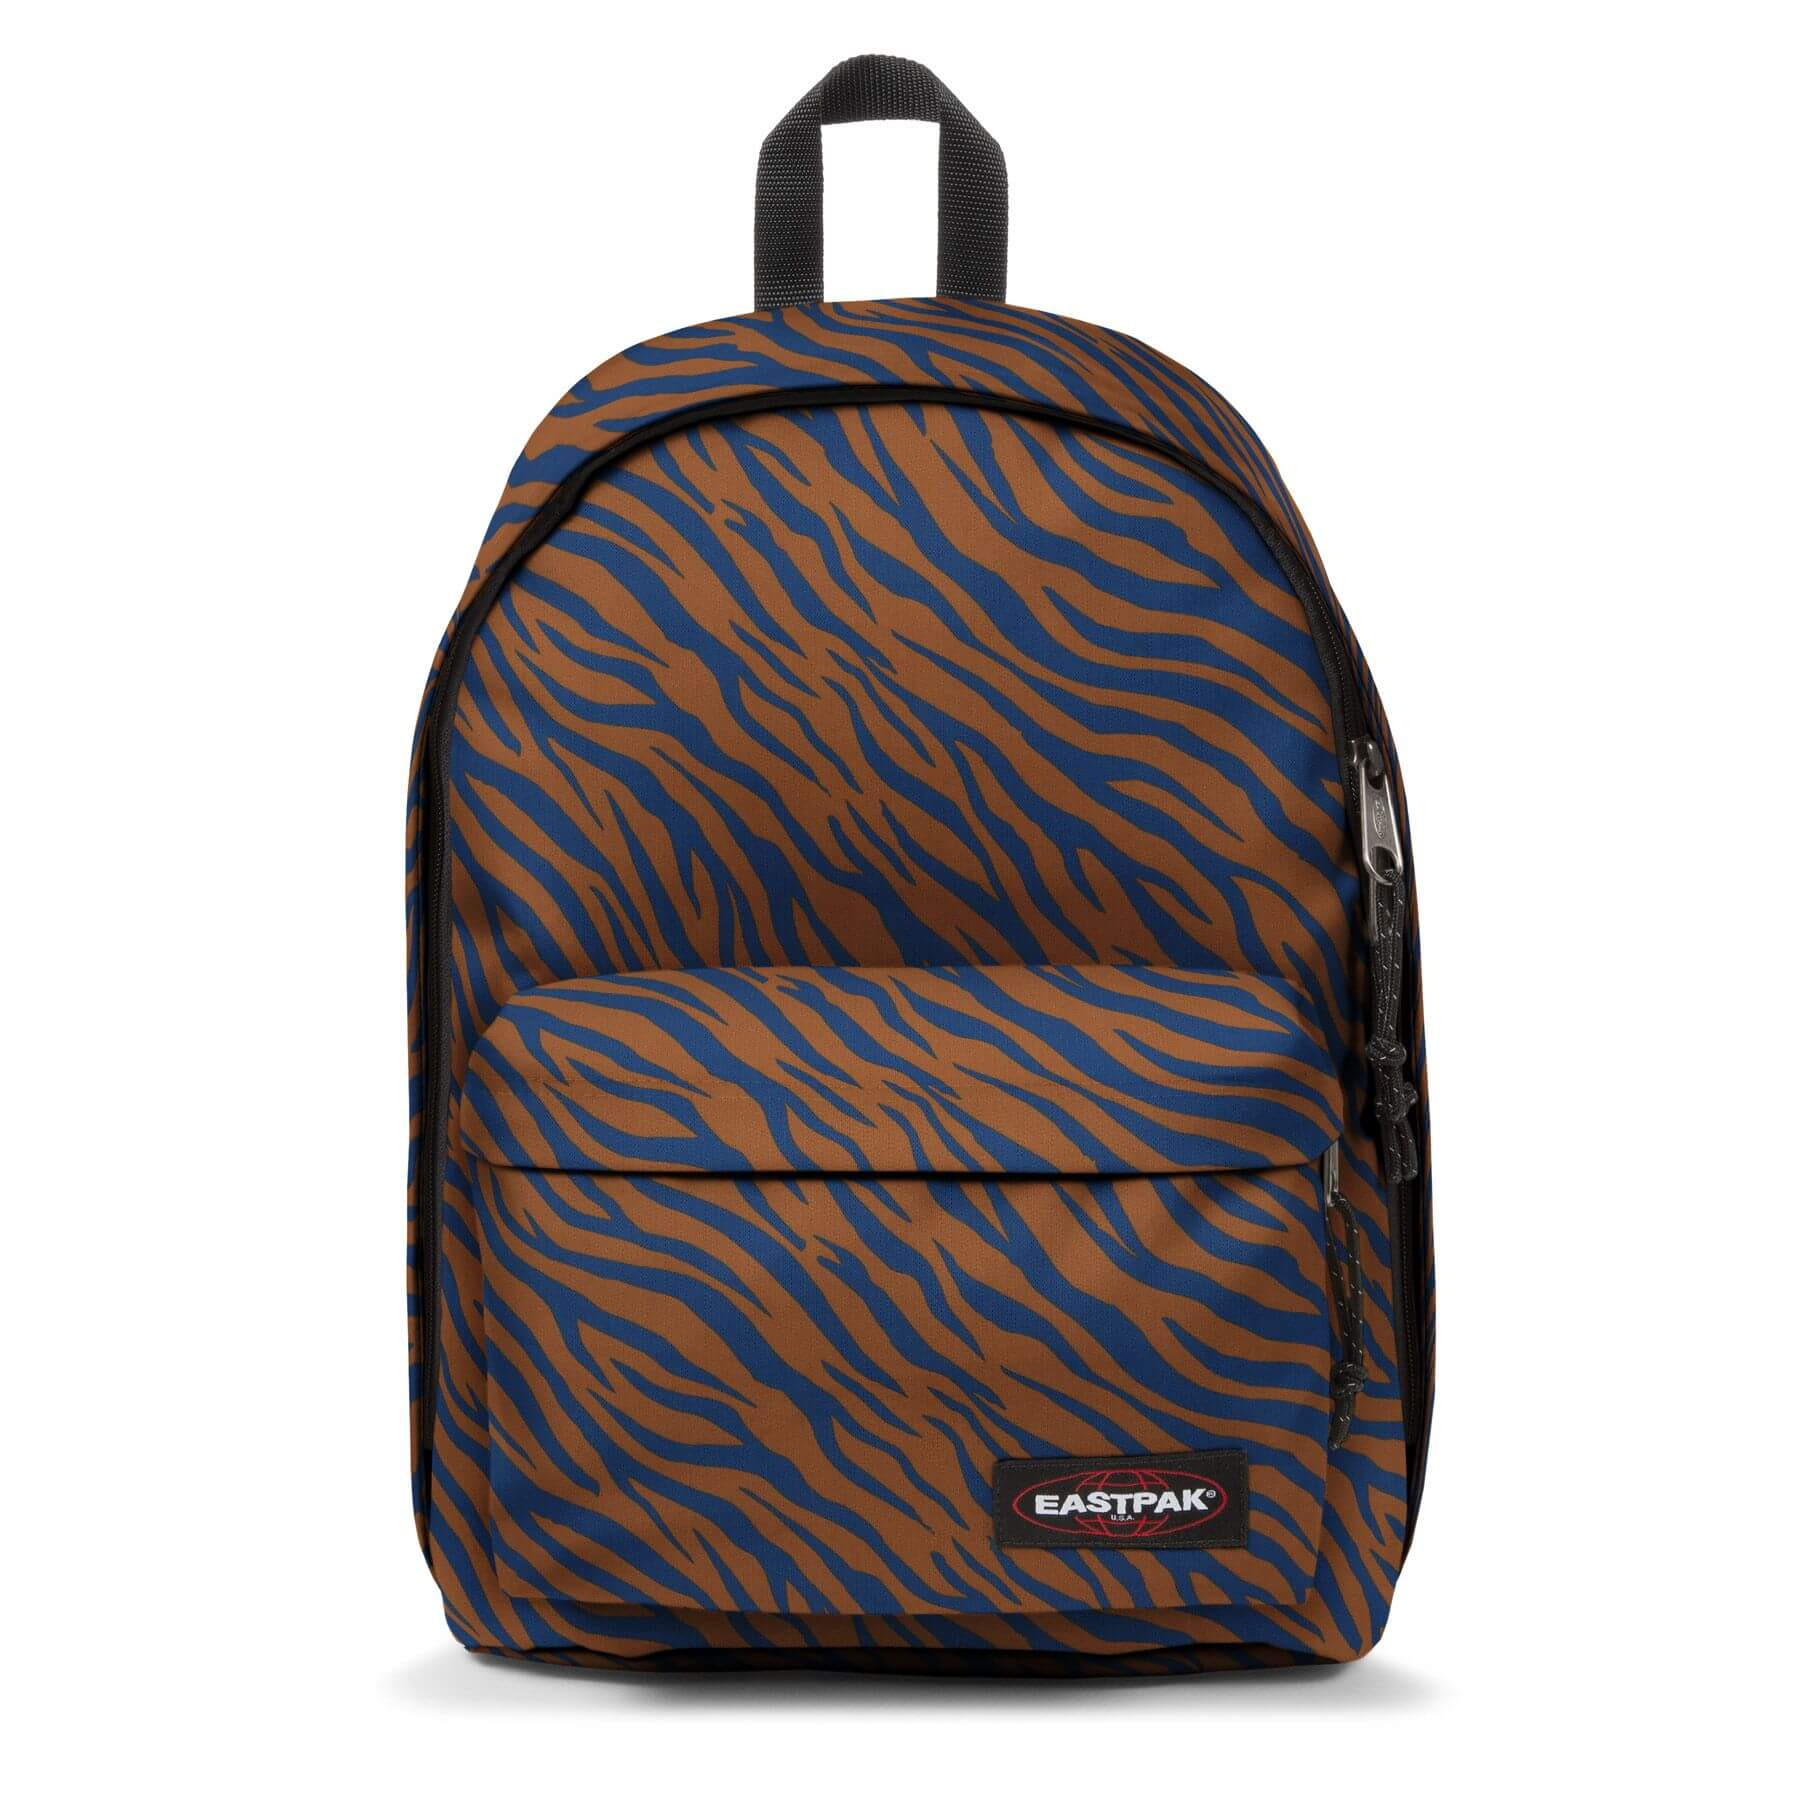 Eastpak Out Of Office Safari Zebra